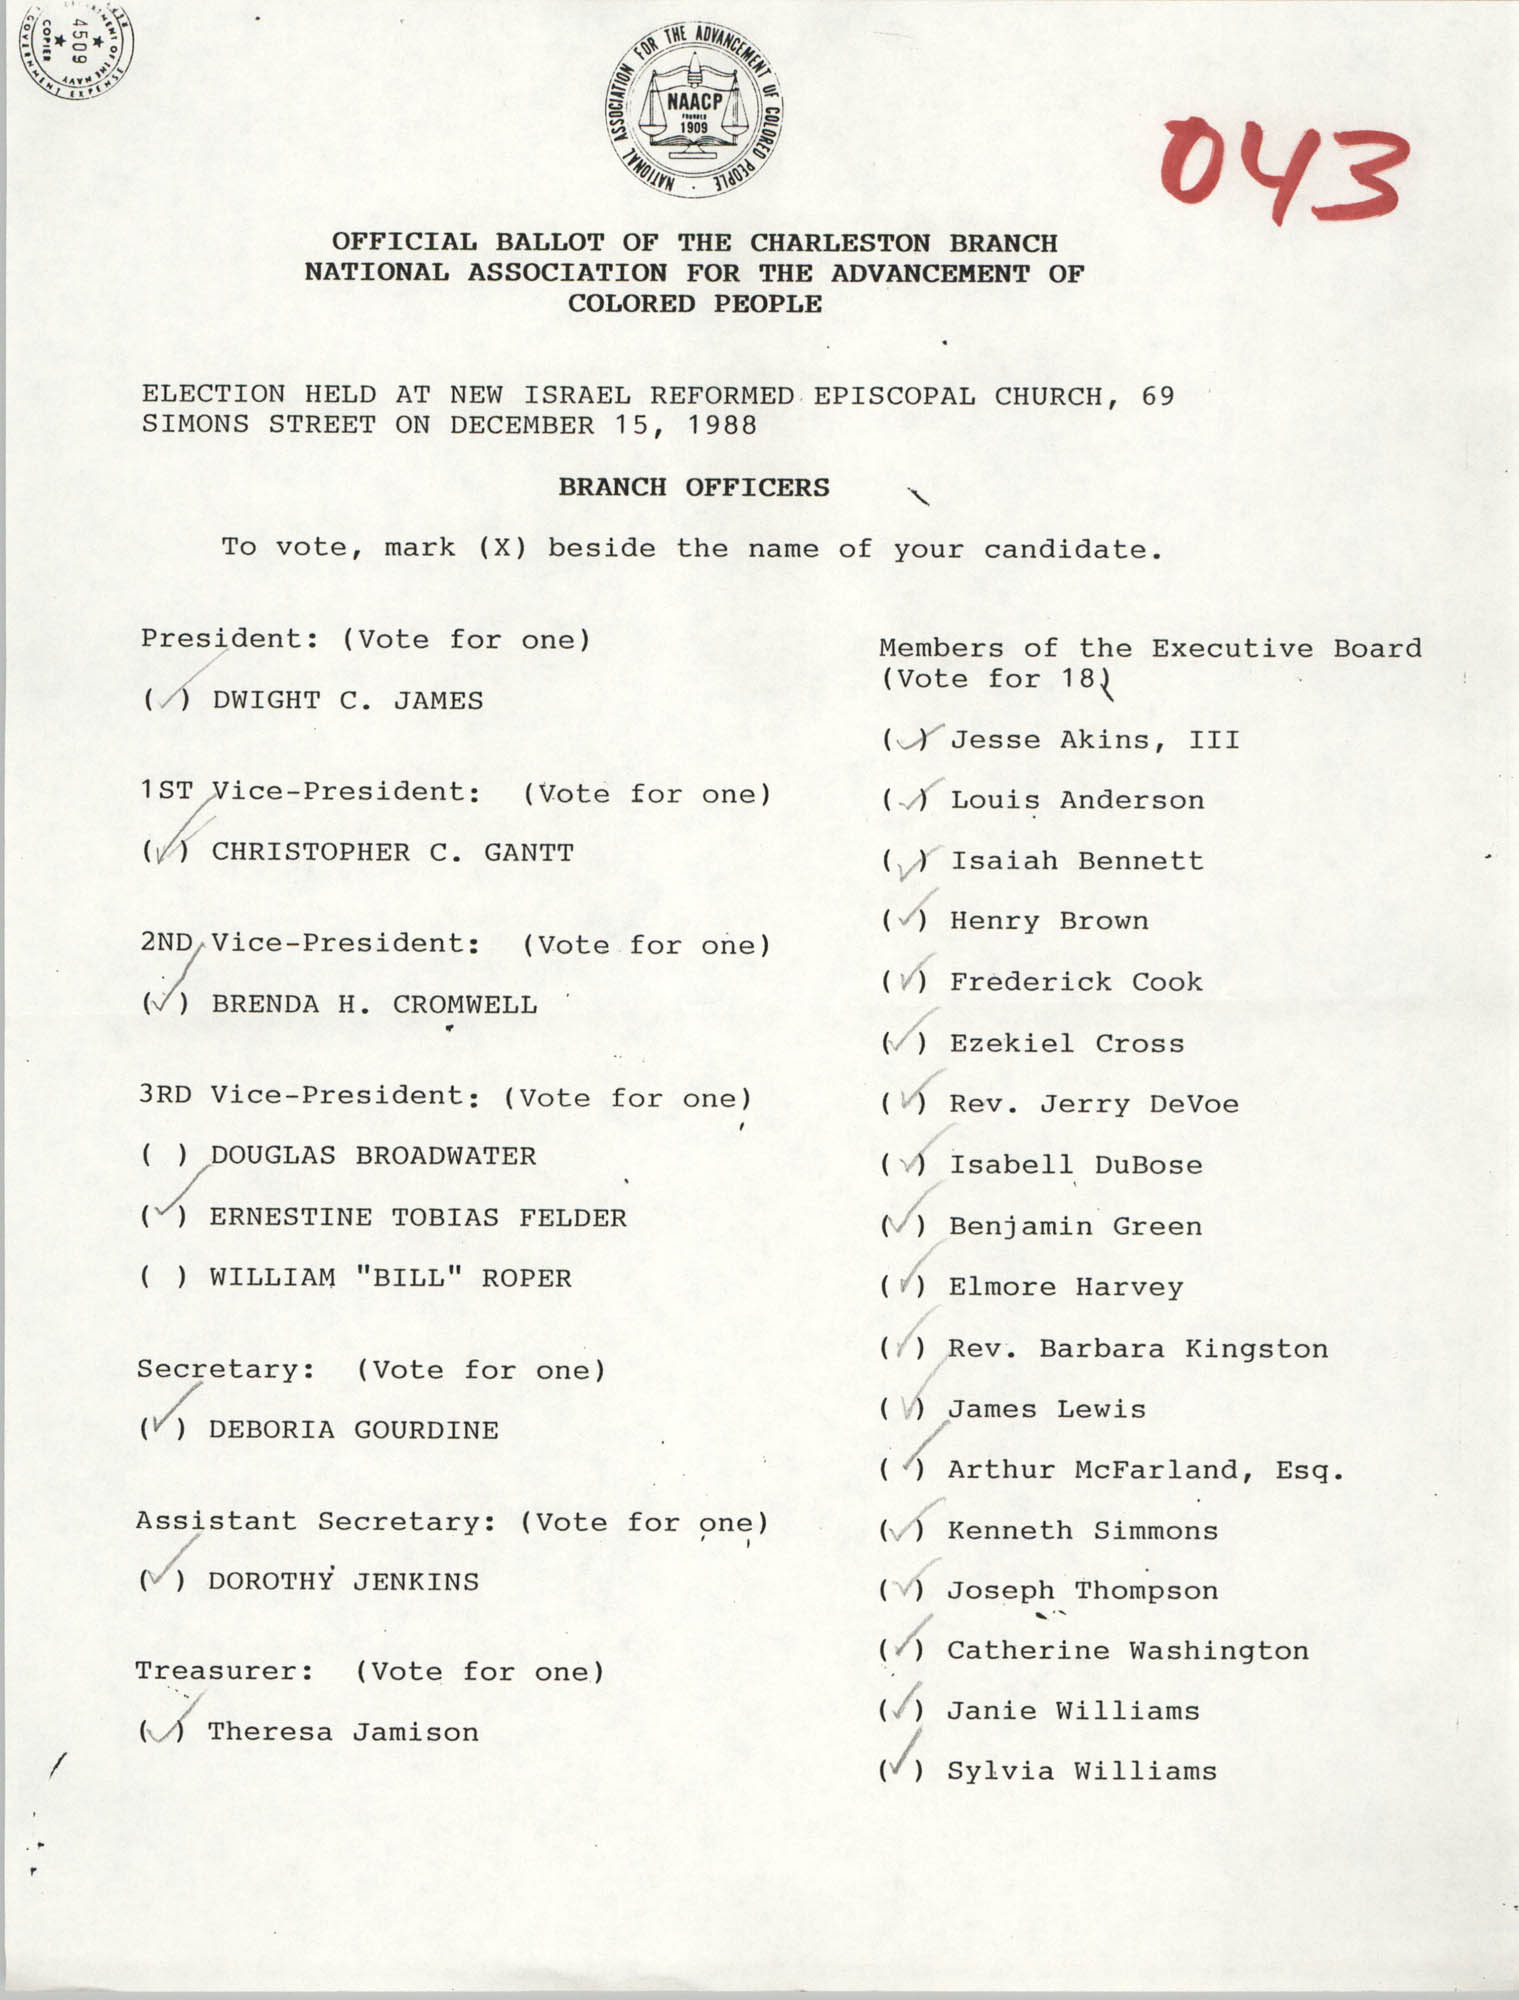 Official Ballot of the Charleston Branch of the NAACP, 043